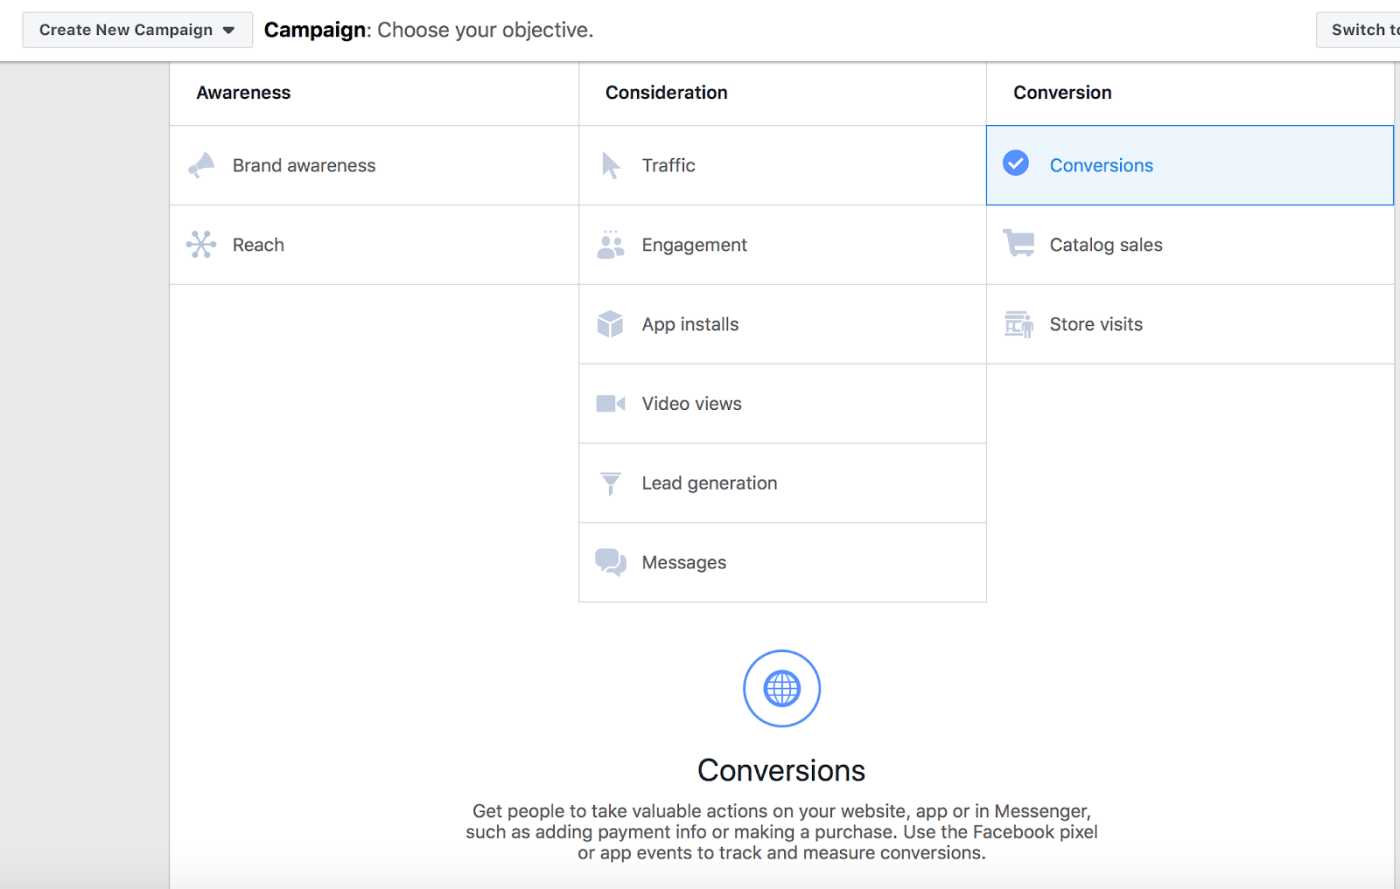 Create new campaign page of Facebook ads manager